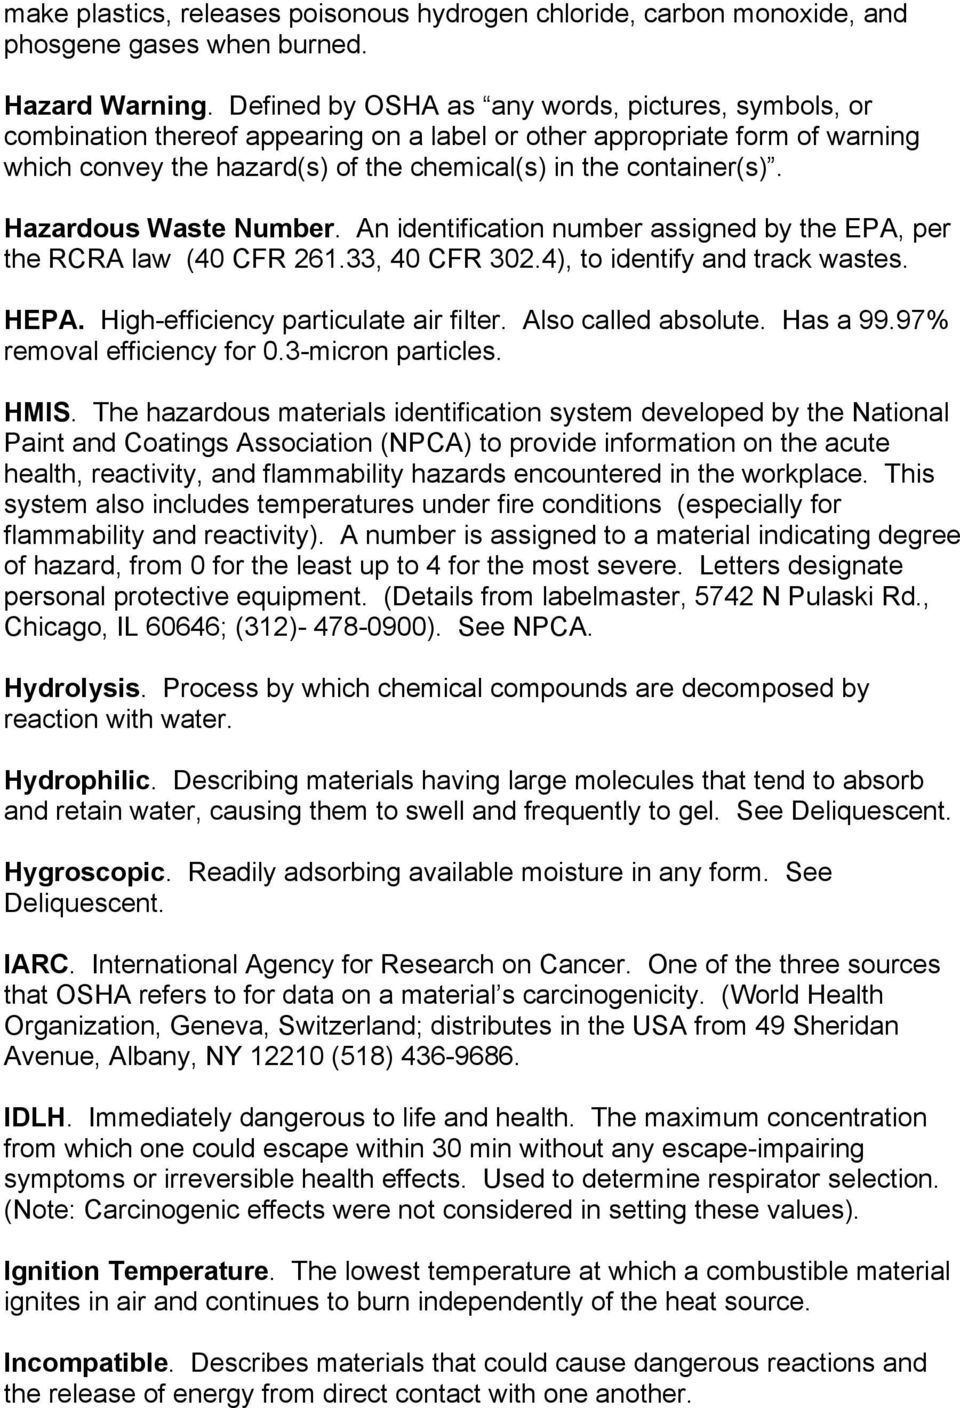 Hazardous Waste Number. An identification number assigned by the EPA, per the RCRA law (40 CFR 261.33, 40 CFR 302.4), to identify and track wastes. HEPA. High-efficiency particulate air filter.